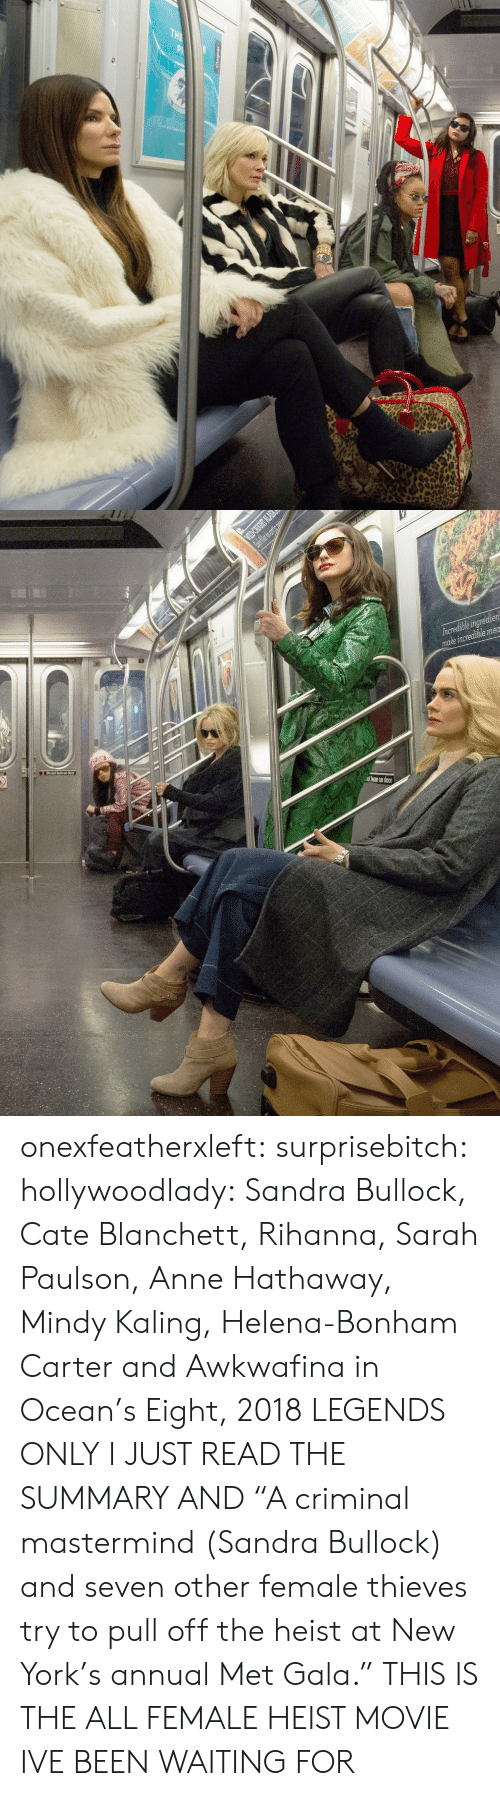 """Lean, New York, and Rihanna: t lean on door onexfeatherxleft:  surprisebitch:  hollywoodlady:    Sandra Bullock, Cate Blanchett, Rihanna, Sarah Paulson, Anne Hathaway, Mindy Kaling, Helena-Bonham Carter and Awkwafina in Ocean's Eight, 2018   LEGENDS ONLY  I JUST READ THE SUMMARY AND   """"A criminal mastermind (Sandra Bullock) and seven other female thieves try to pull off the heist at New York's annual Met Gala.""""  THIS IS THE ALL FEMALE HEIST MOVIE IVE BEEN WAITING FOR"""